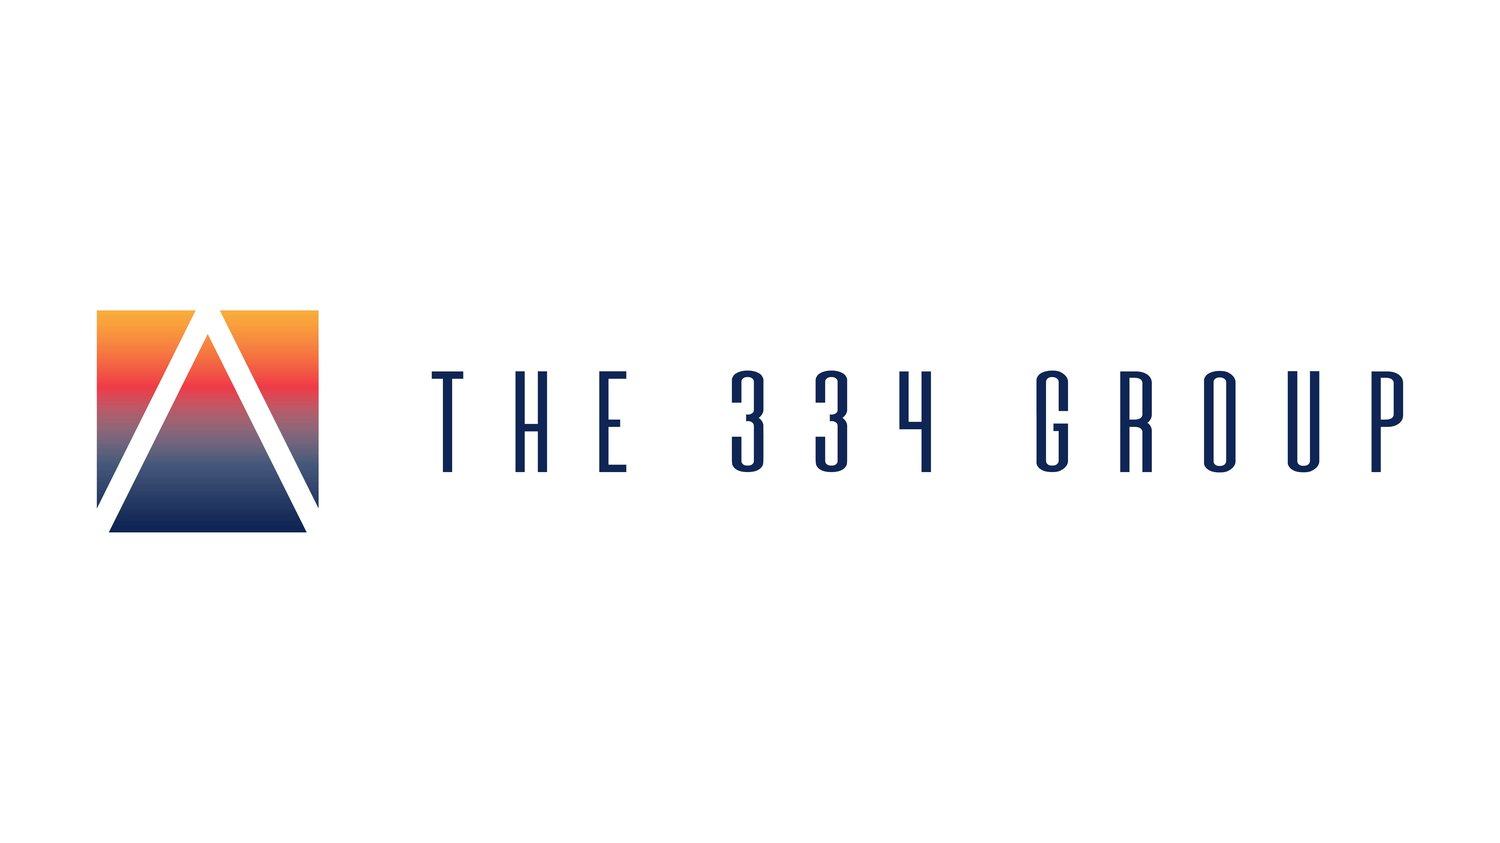 The 334 Group